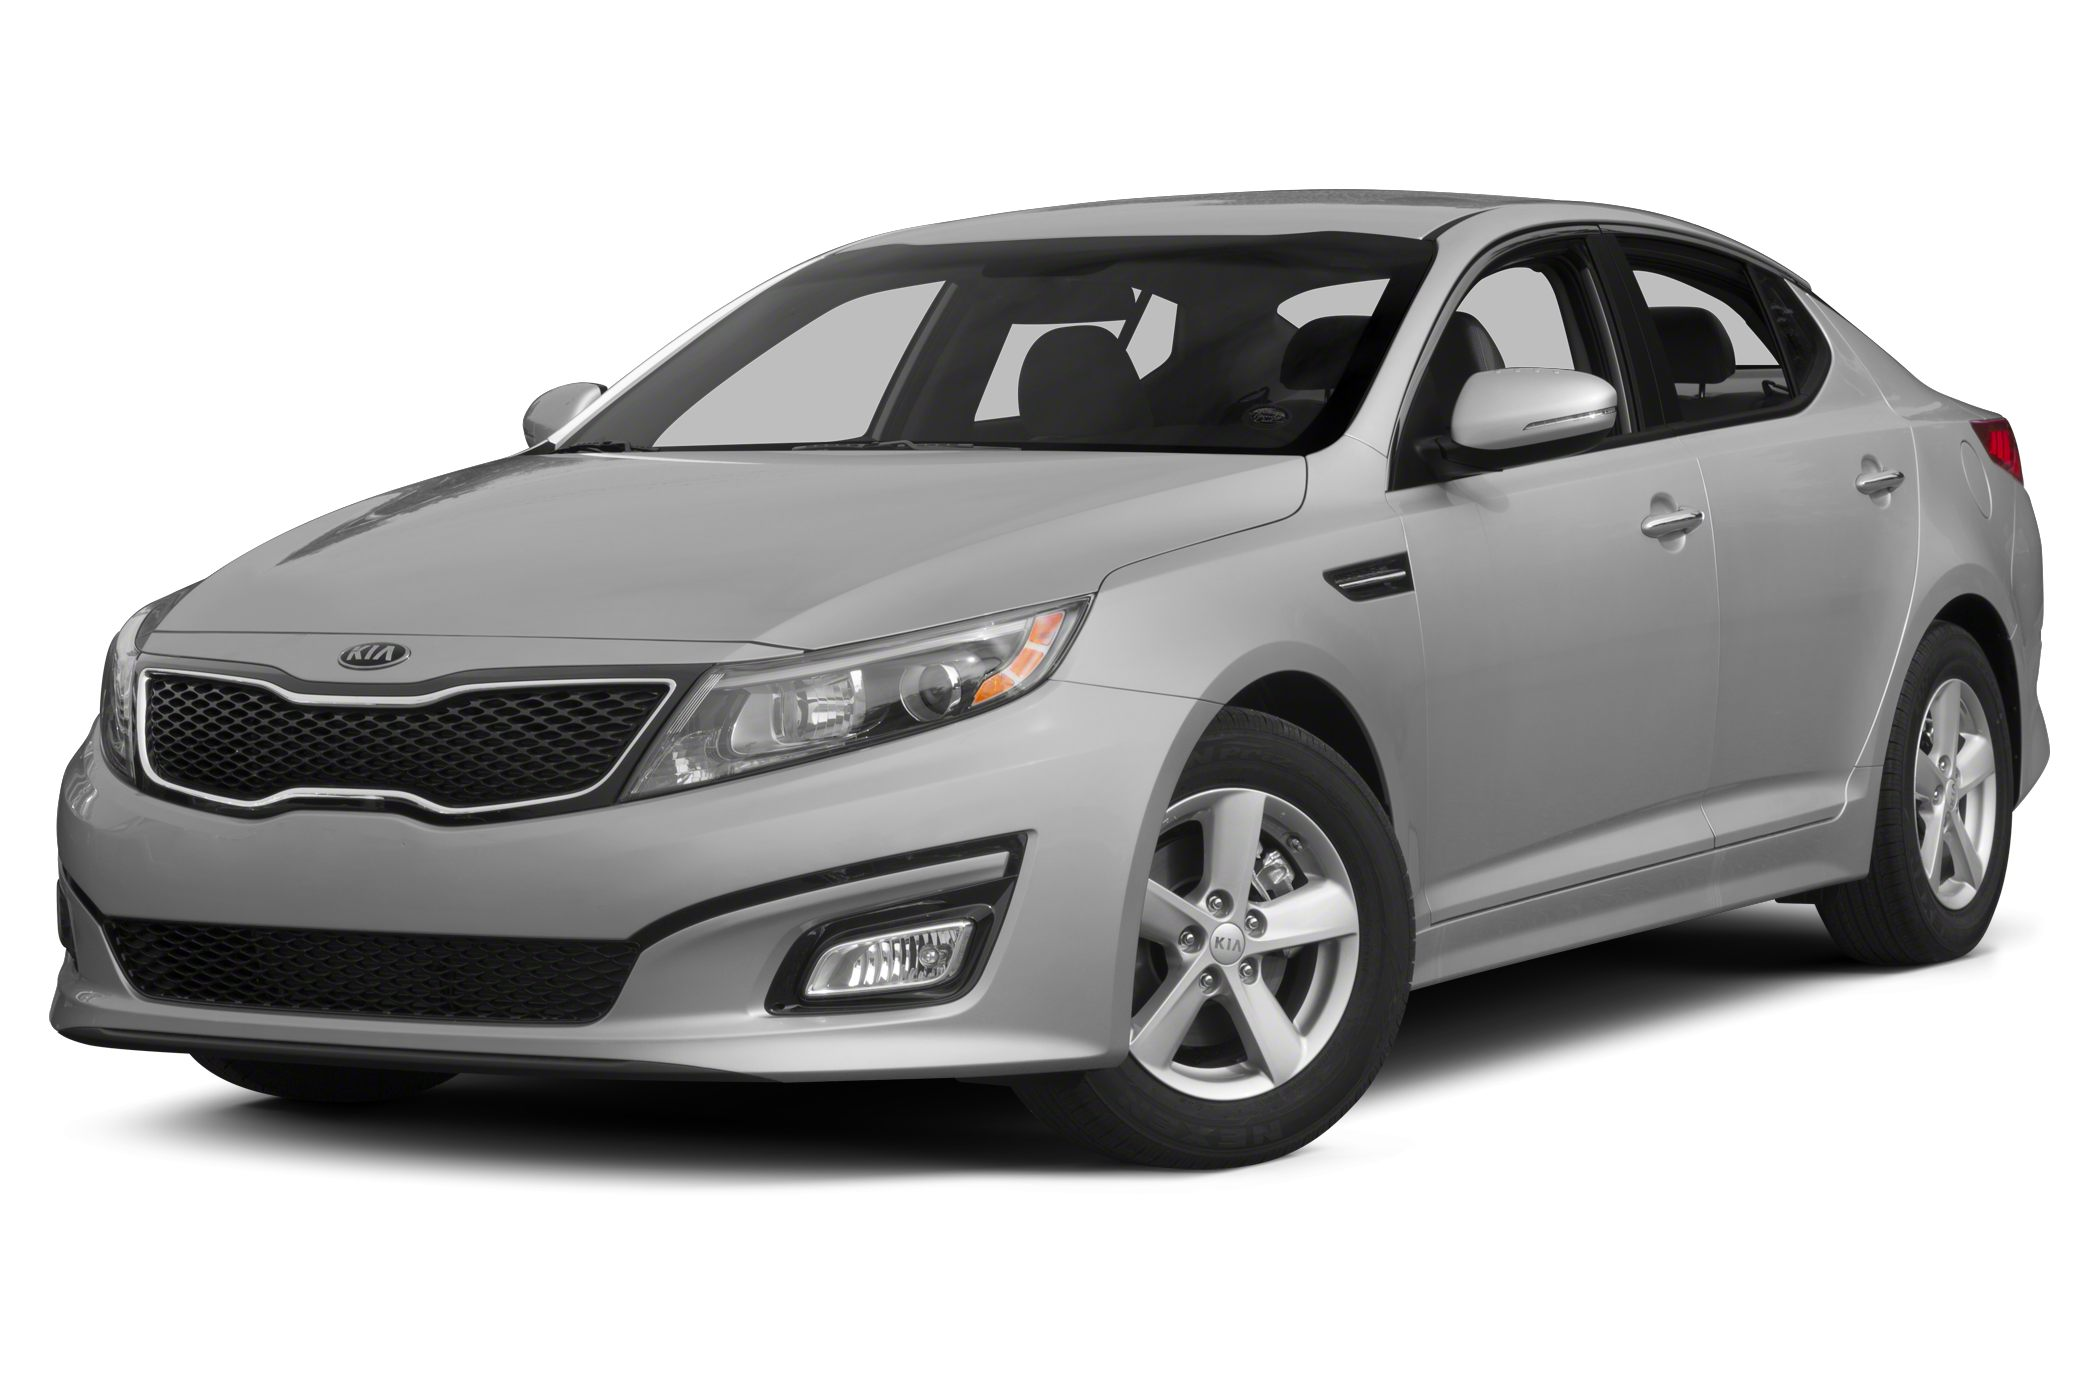 2014 Kia Optima EX Sedan for sale in Muscatine for $18,495 with 13,664 miles.